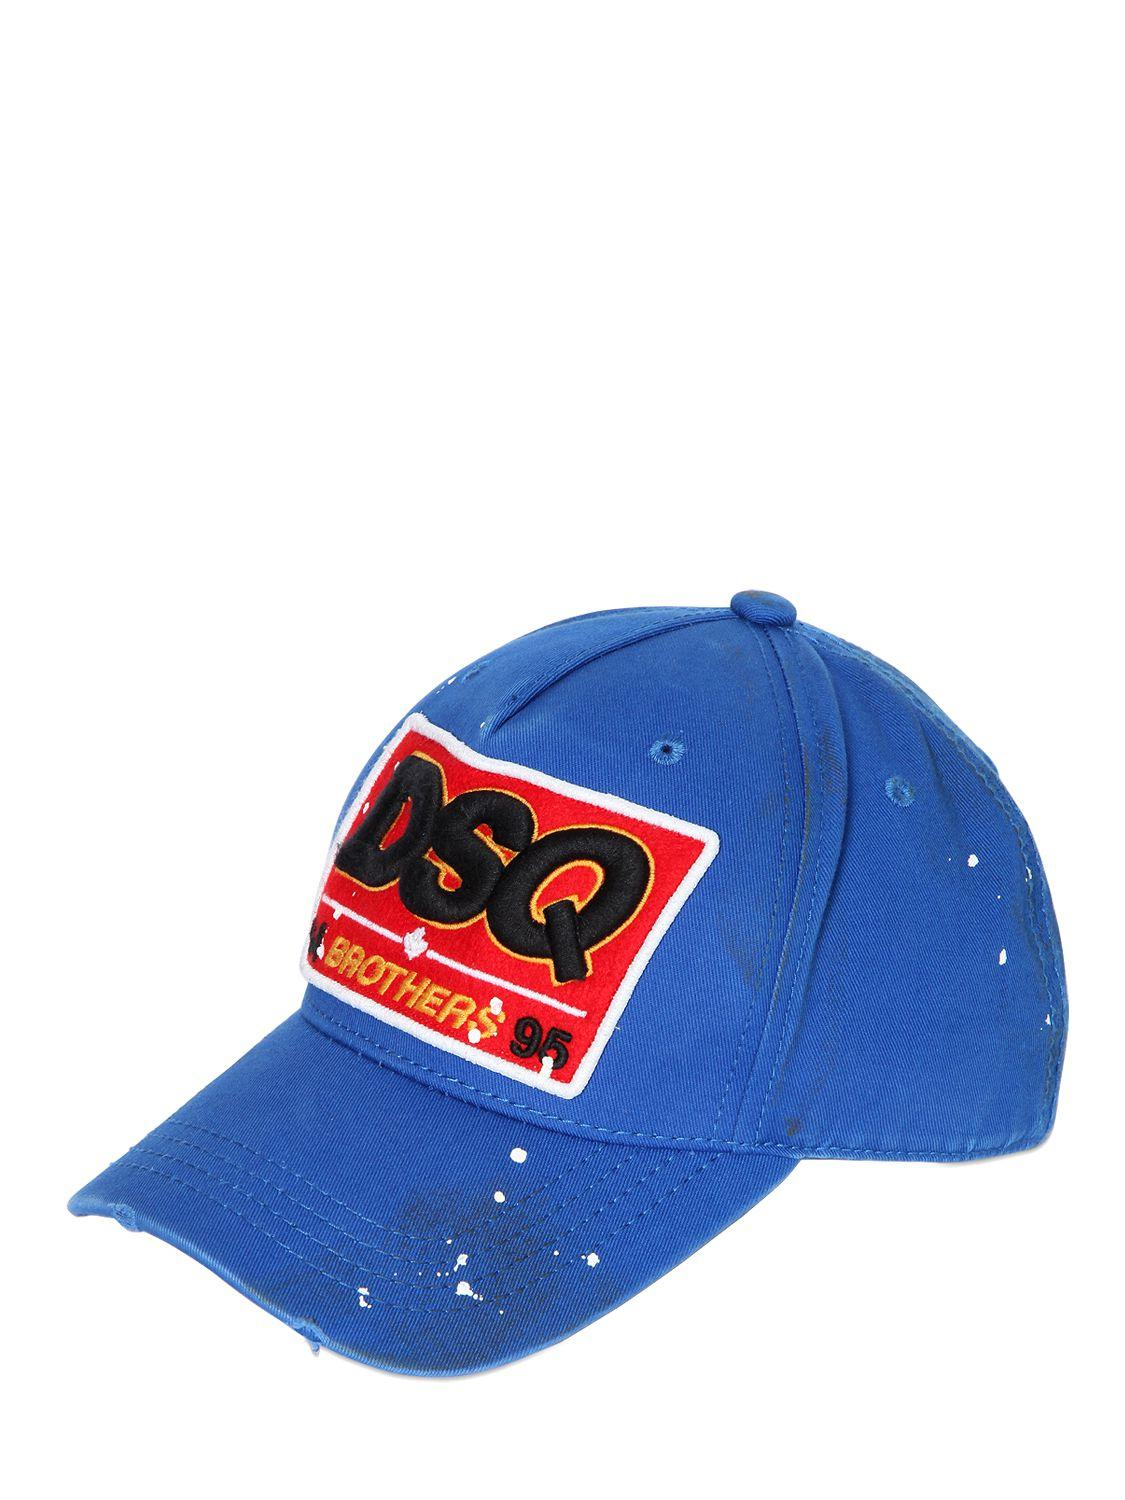 Dsquared 178 Dsq Patch Cotton Canvas Baseball Hat In Blue For